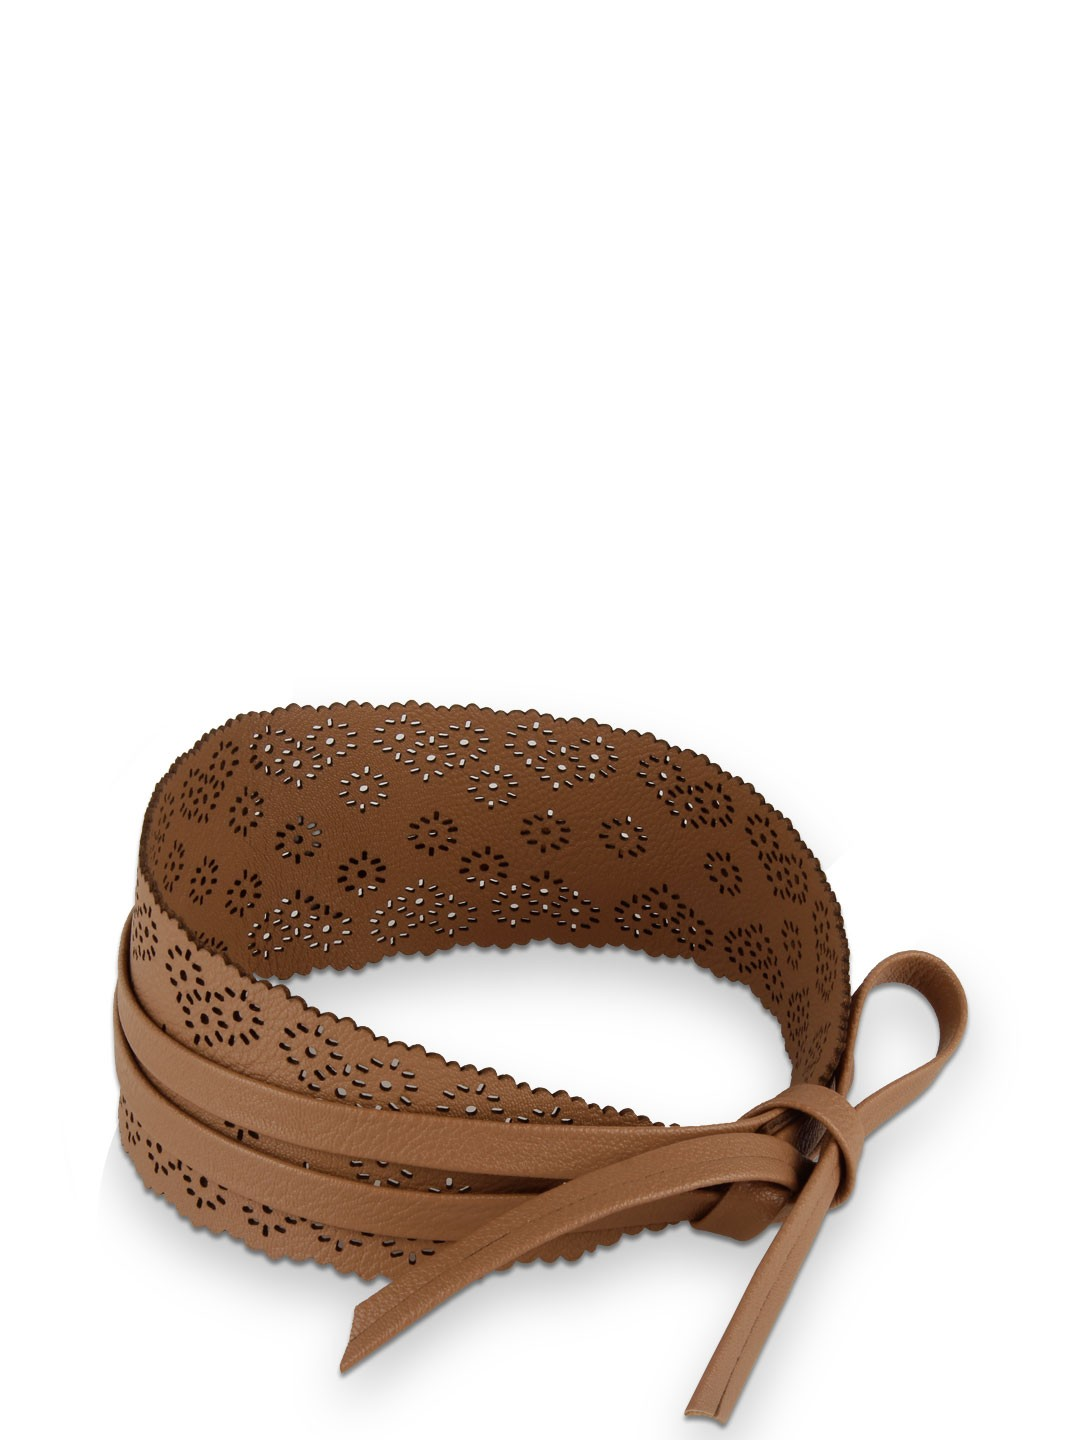 Shop belts for women on sale with wholesale cheap price and fast delivery, and find more womens best cool leather belts & ball belts and bulk belts online with drop shipping. search 1.